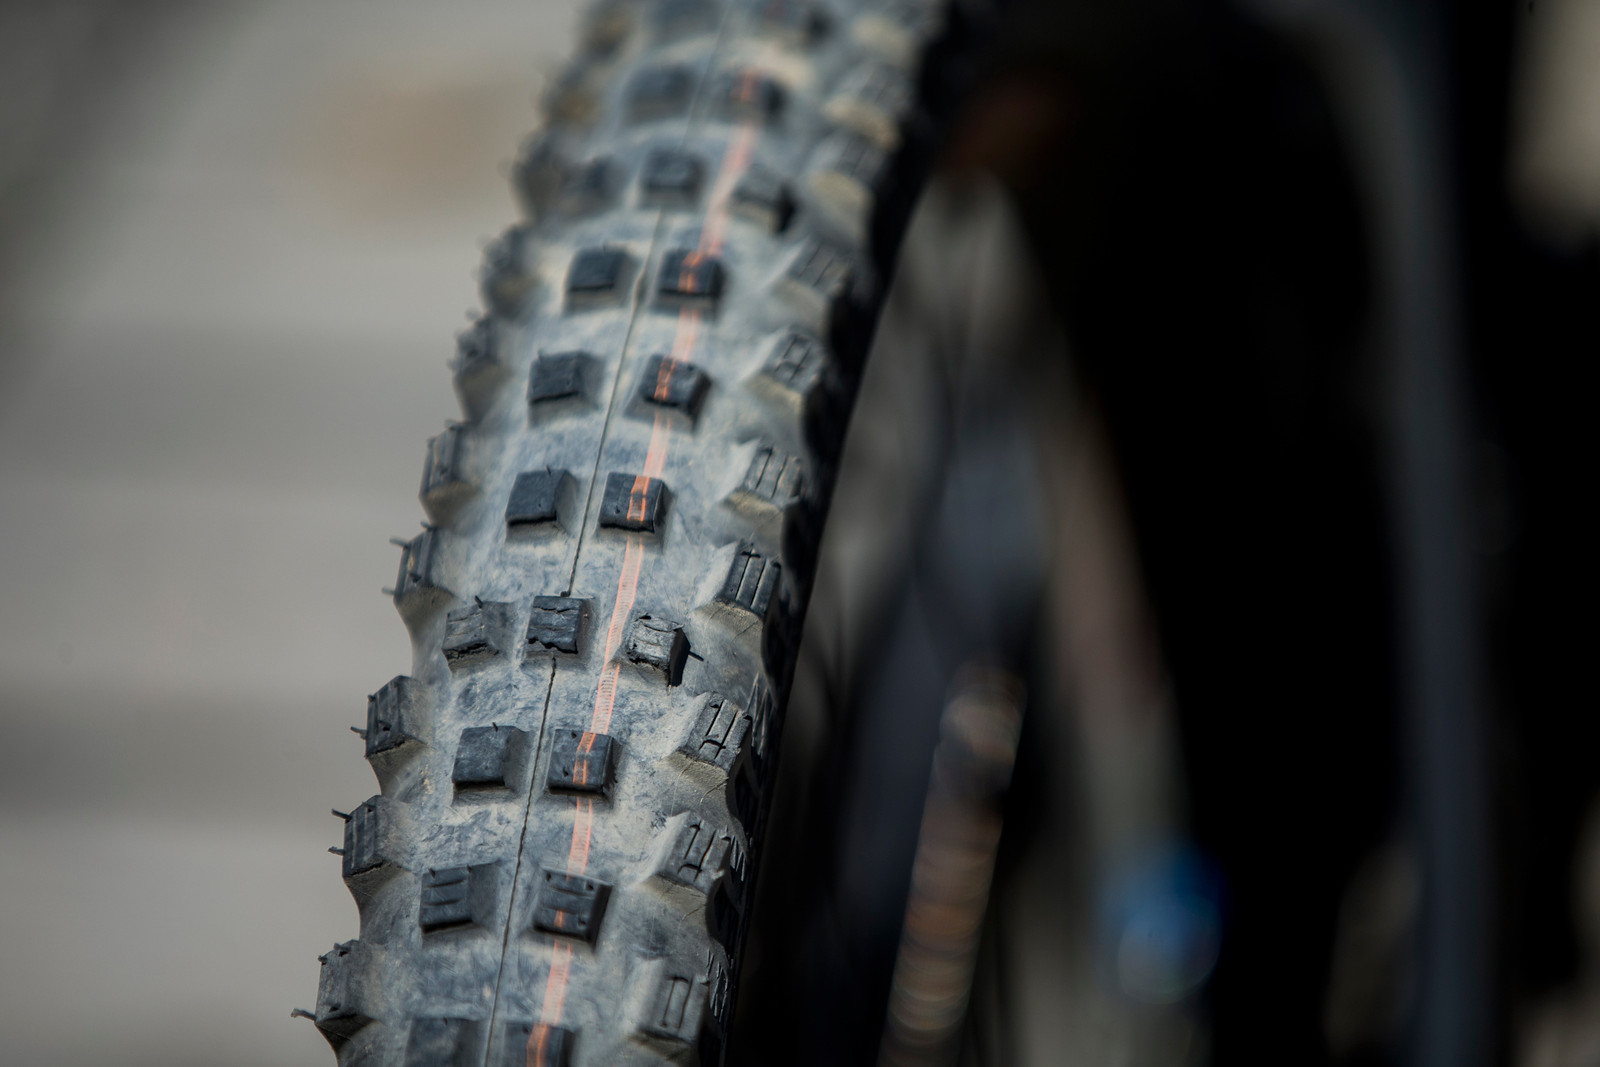 Schwalbe Magic Mary Tires Front and Rear - WINNING BIKE: Tahnee Seagrave's Prototype Transition - Mountain Biking Pictures - Vital MTB